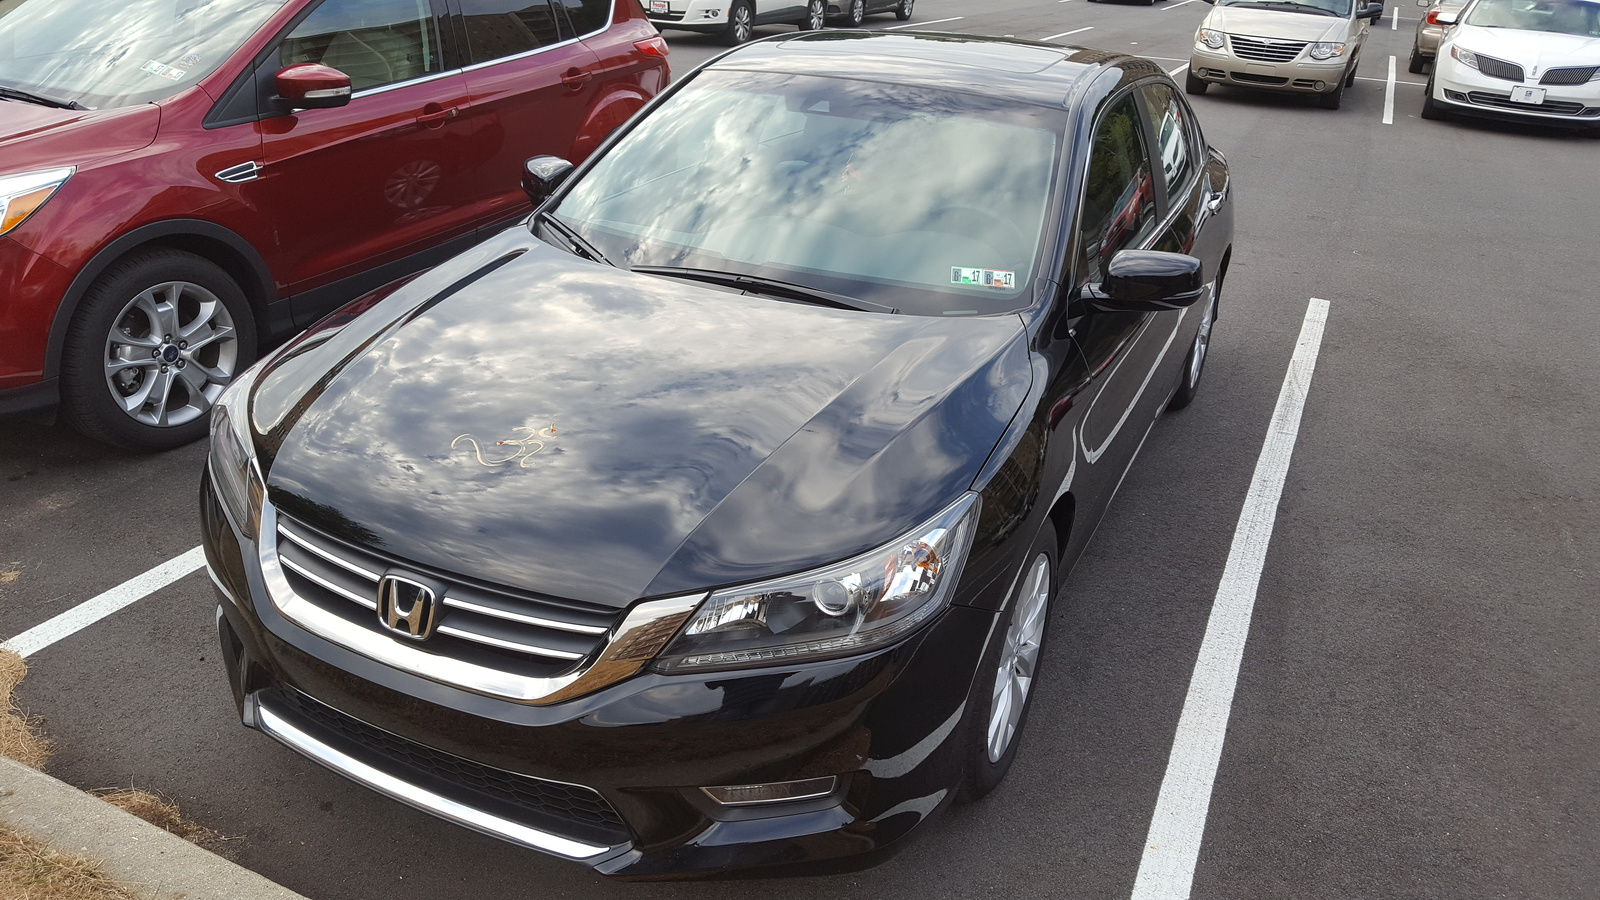 2013 honda accord ex l for sale in philadelphia pa cargurus. Black Bedroom Furniture Sets. Home Design Ideas